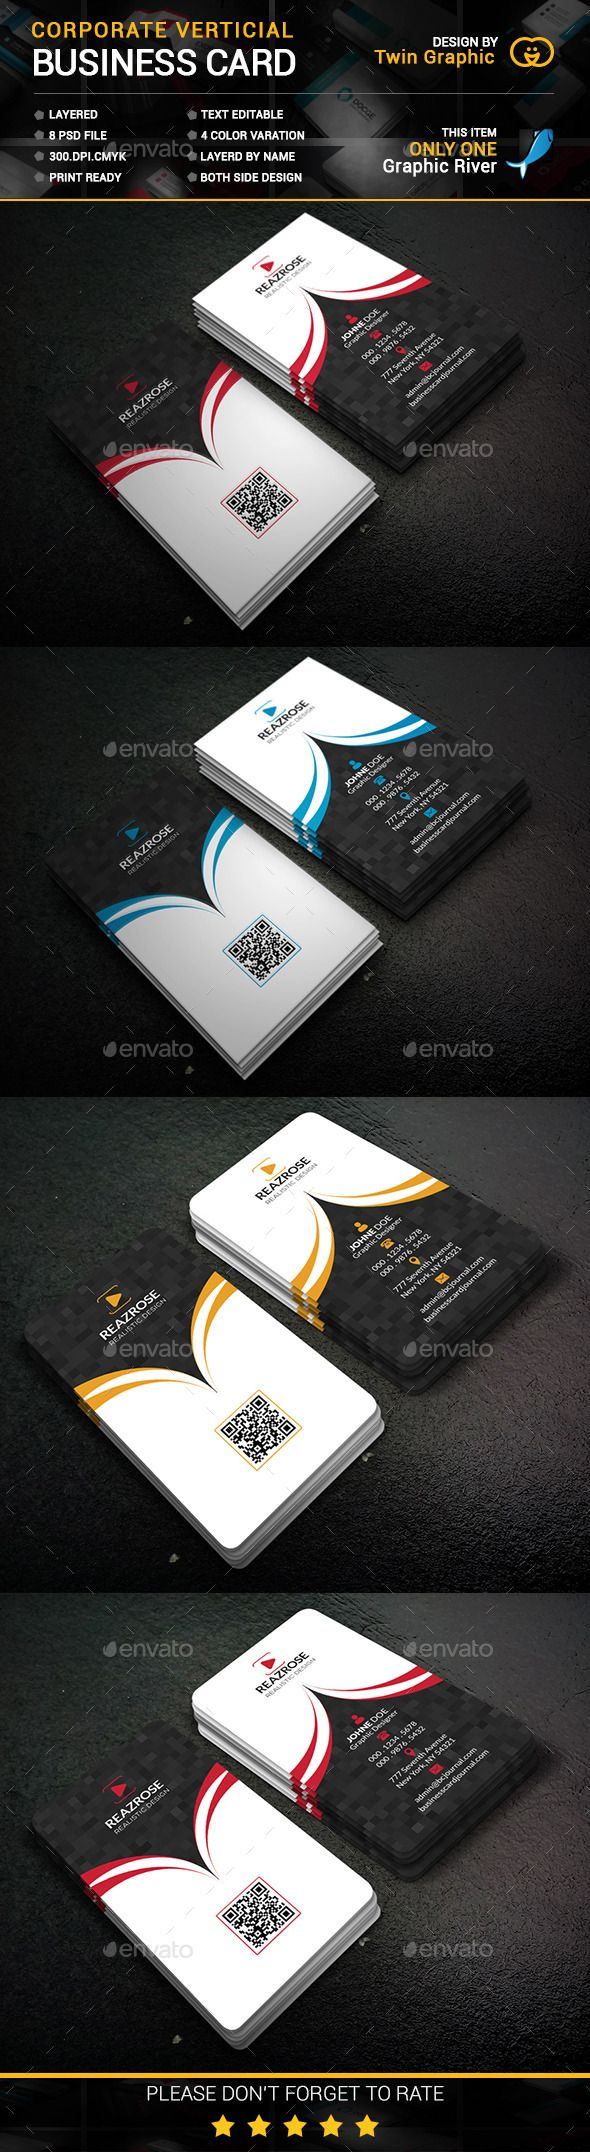 Best 25 vertical business cards ideas on pinterest business corporate vertical business card design magicingreecefo Gallery